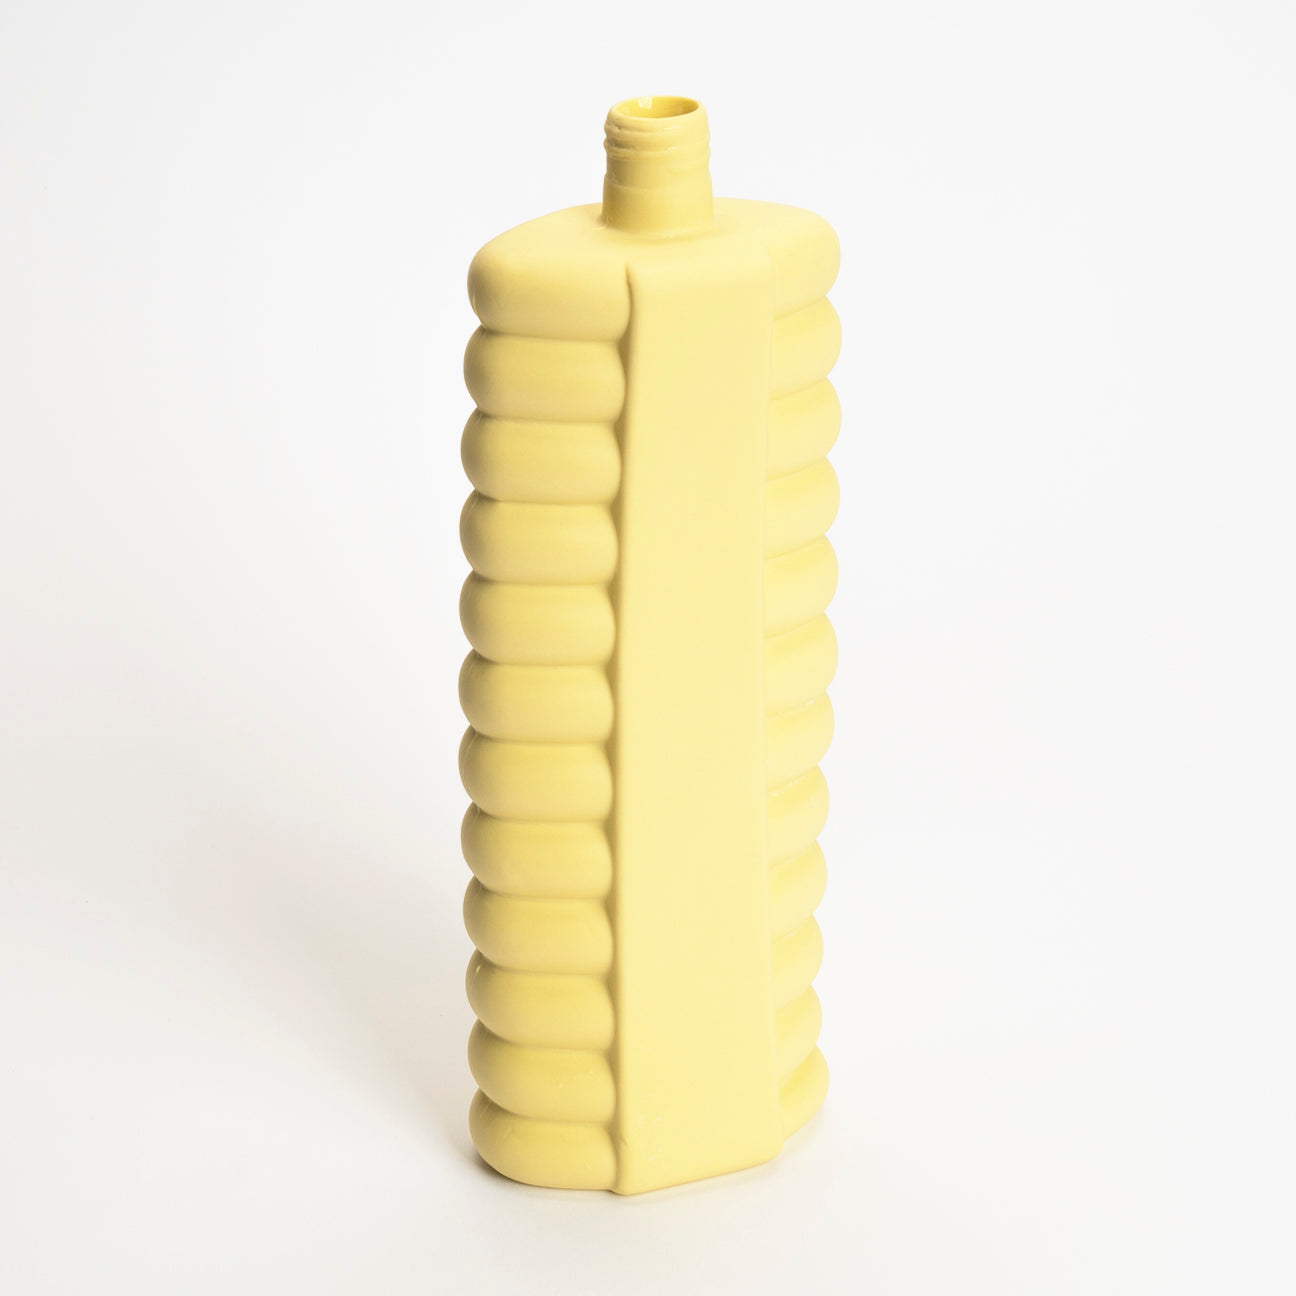 Bottle Vase #10 in Fresh Yellow